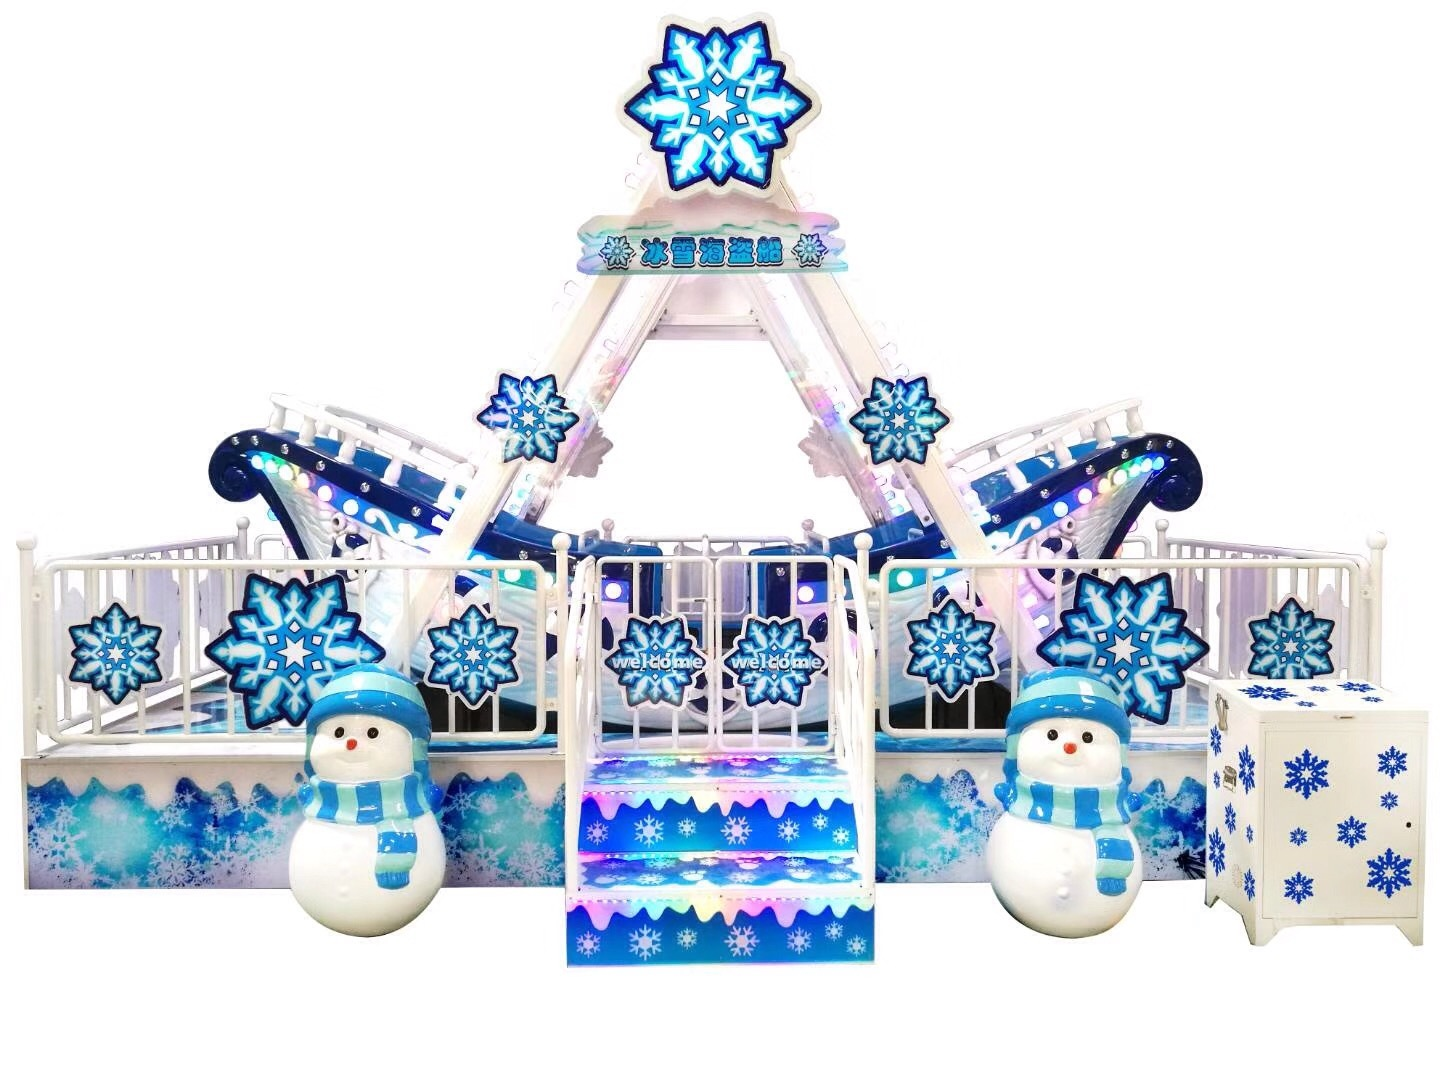 JS-MR004 Snow pirate ship